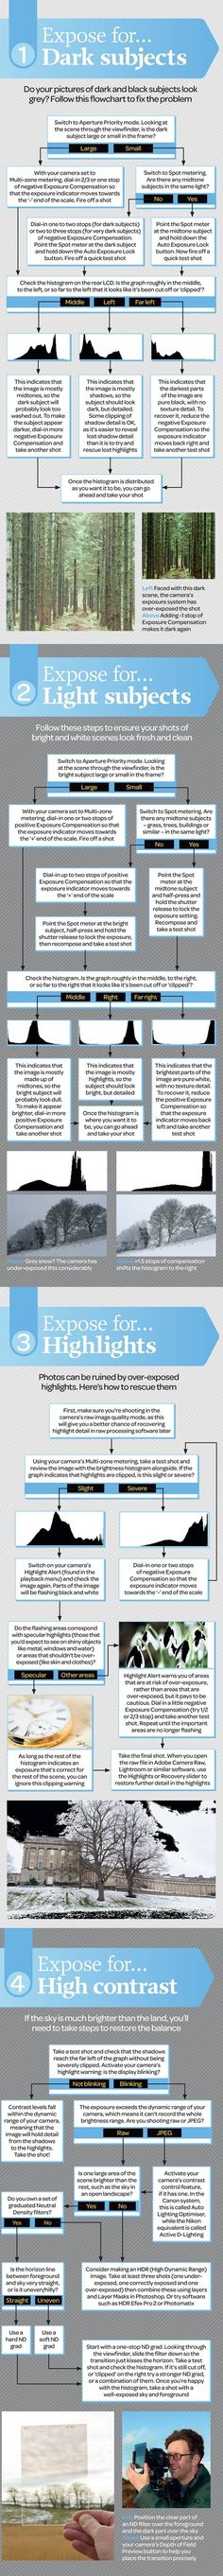 Photography Basics: the No. 1 cheat sheet for metering and exposure by Nannagirl